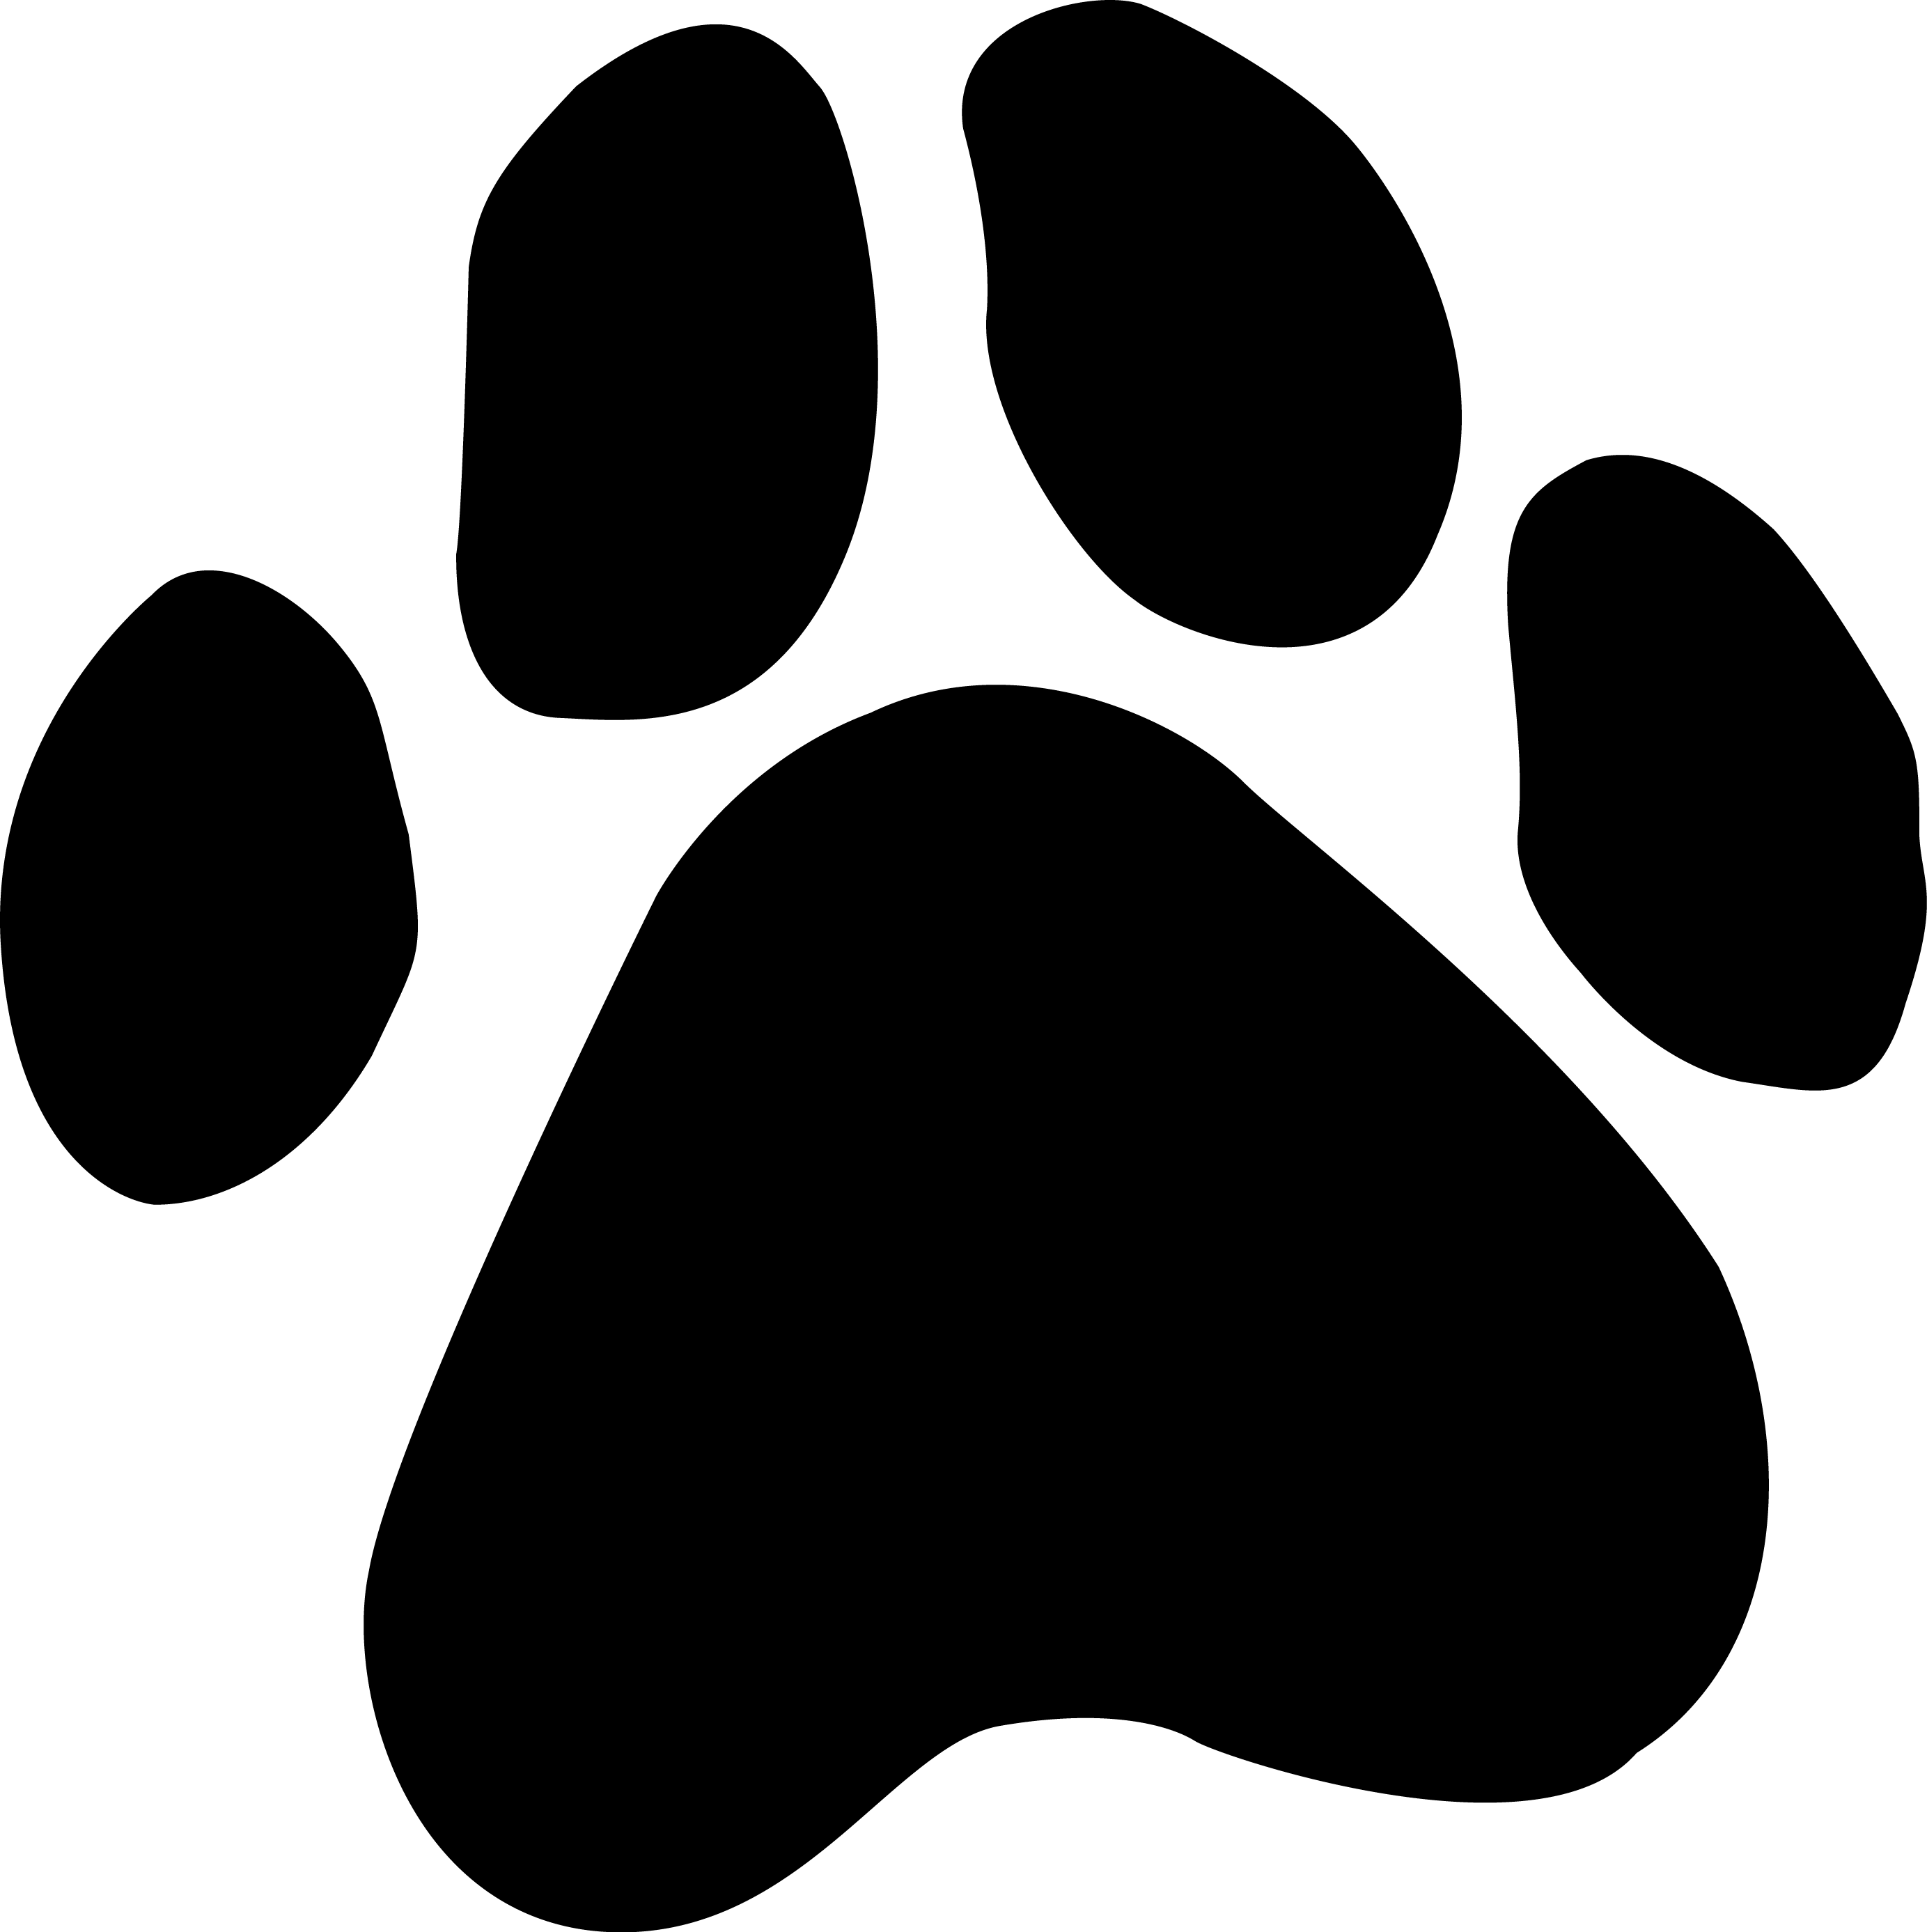 2767x2774 Collection Of Free Footprint Vector Pet. Download On Ubisafe